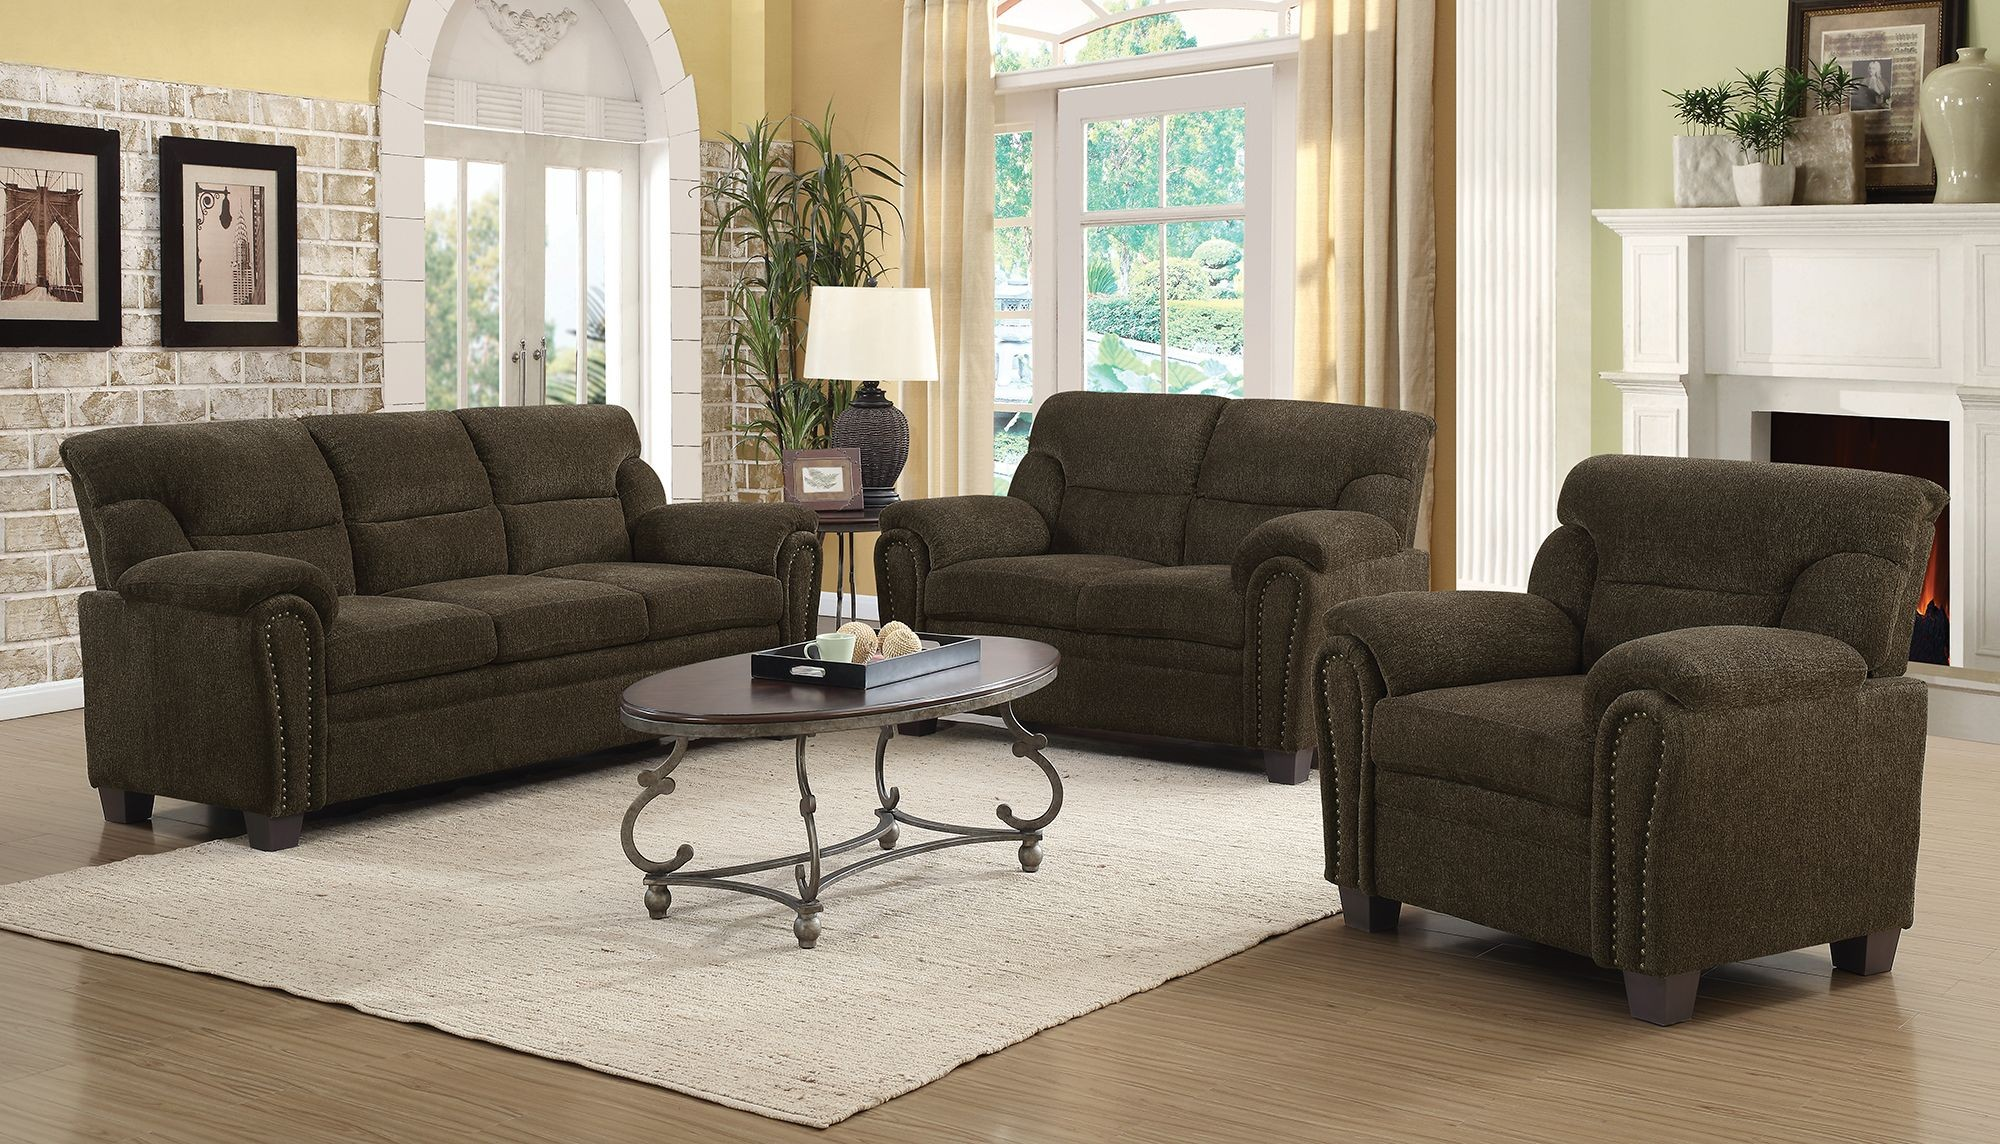 Clementine Brown Living Room Set 506571 72 Coaster Furniture